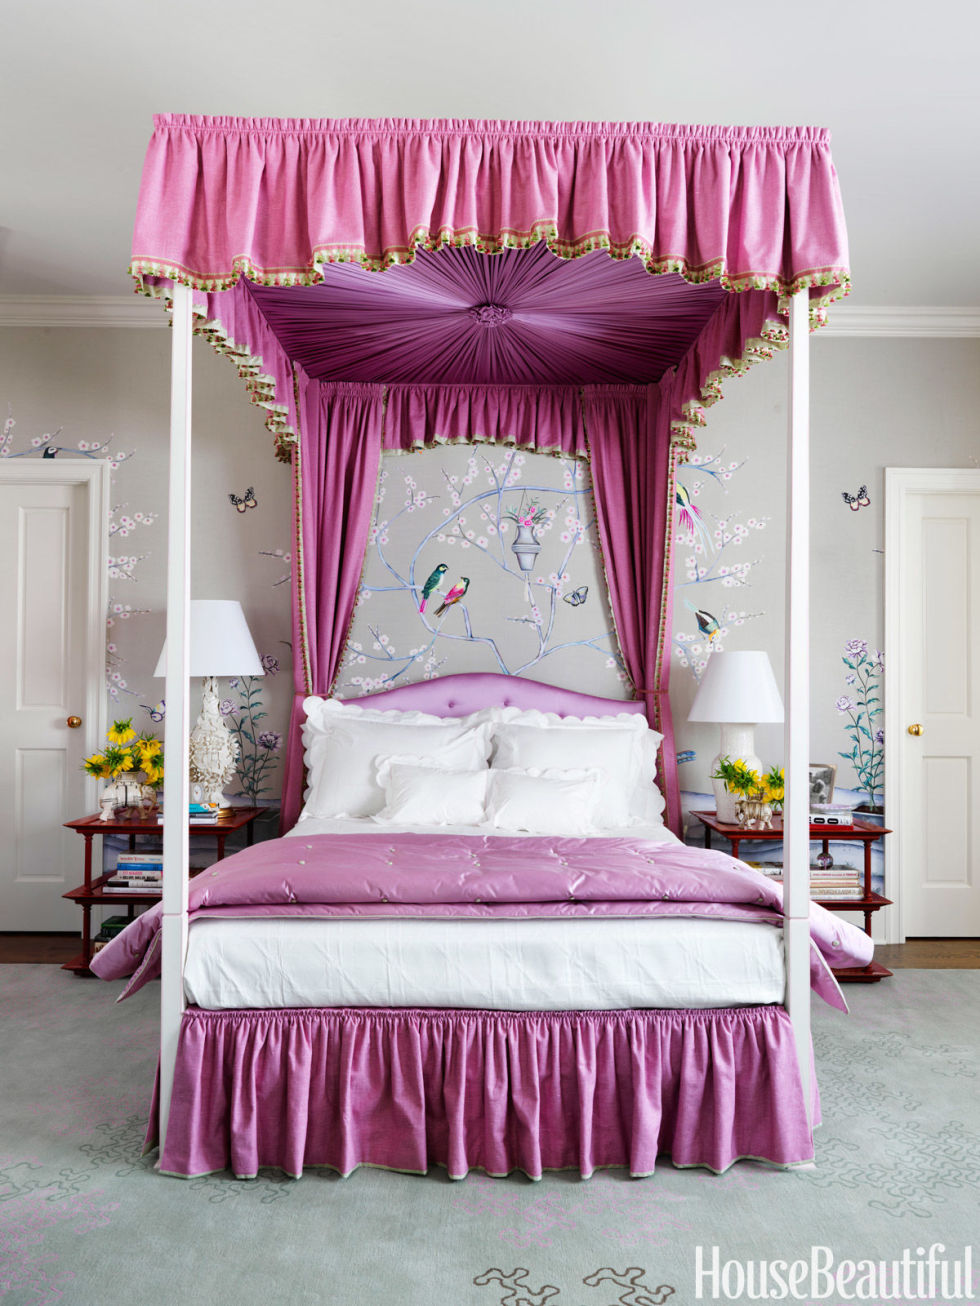 Paint colors for bedrooms pink - Paint Colors For Bedrooms Pink 16